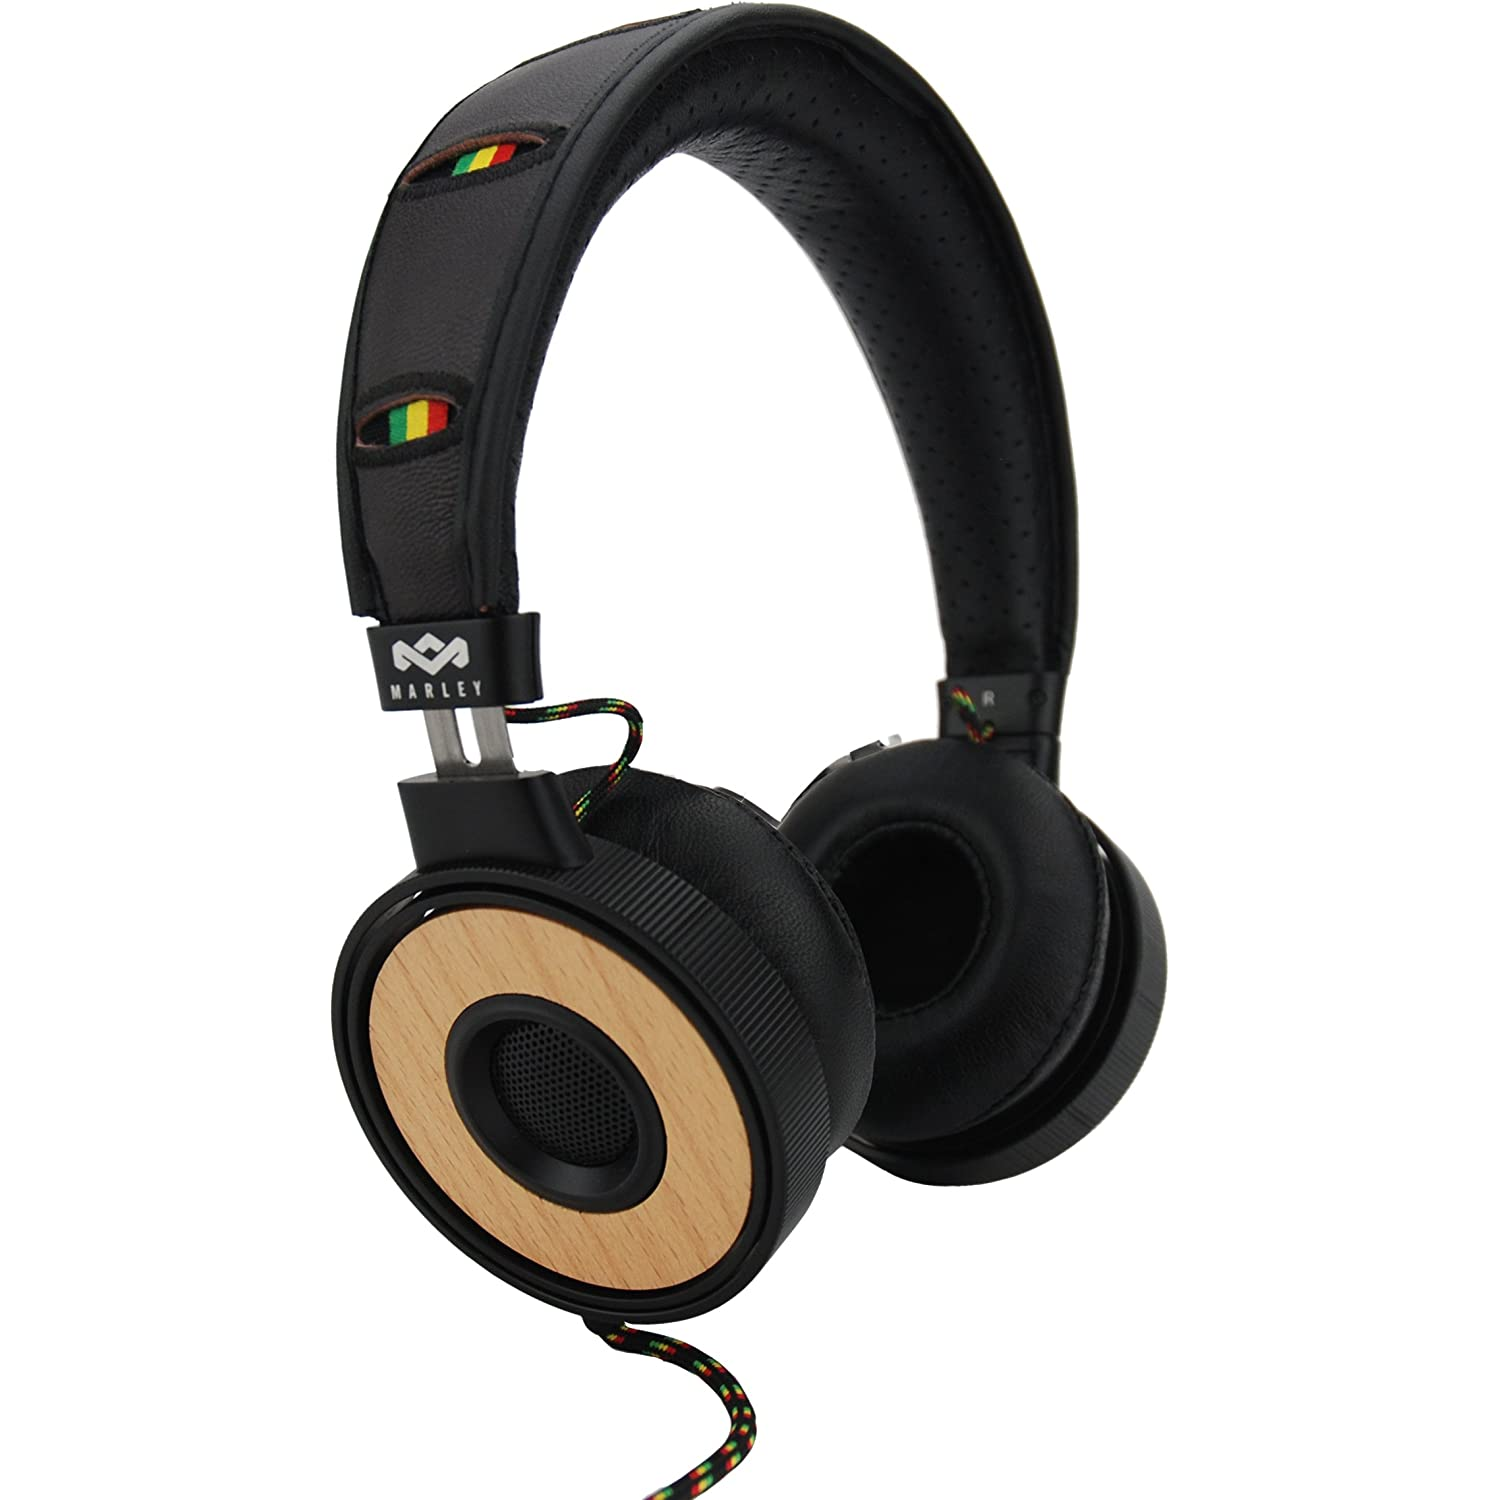 ヘッドホン おしゃれ House of Marley Redemption Song OE – Harvest with Mic&Remoteをおすすめ